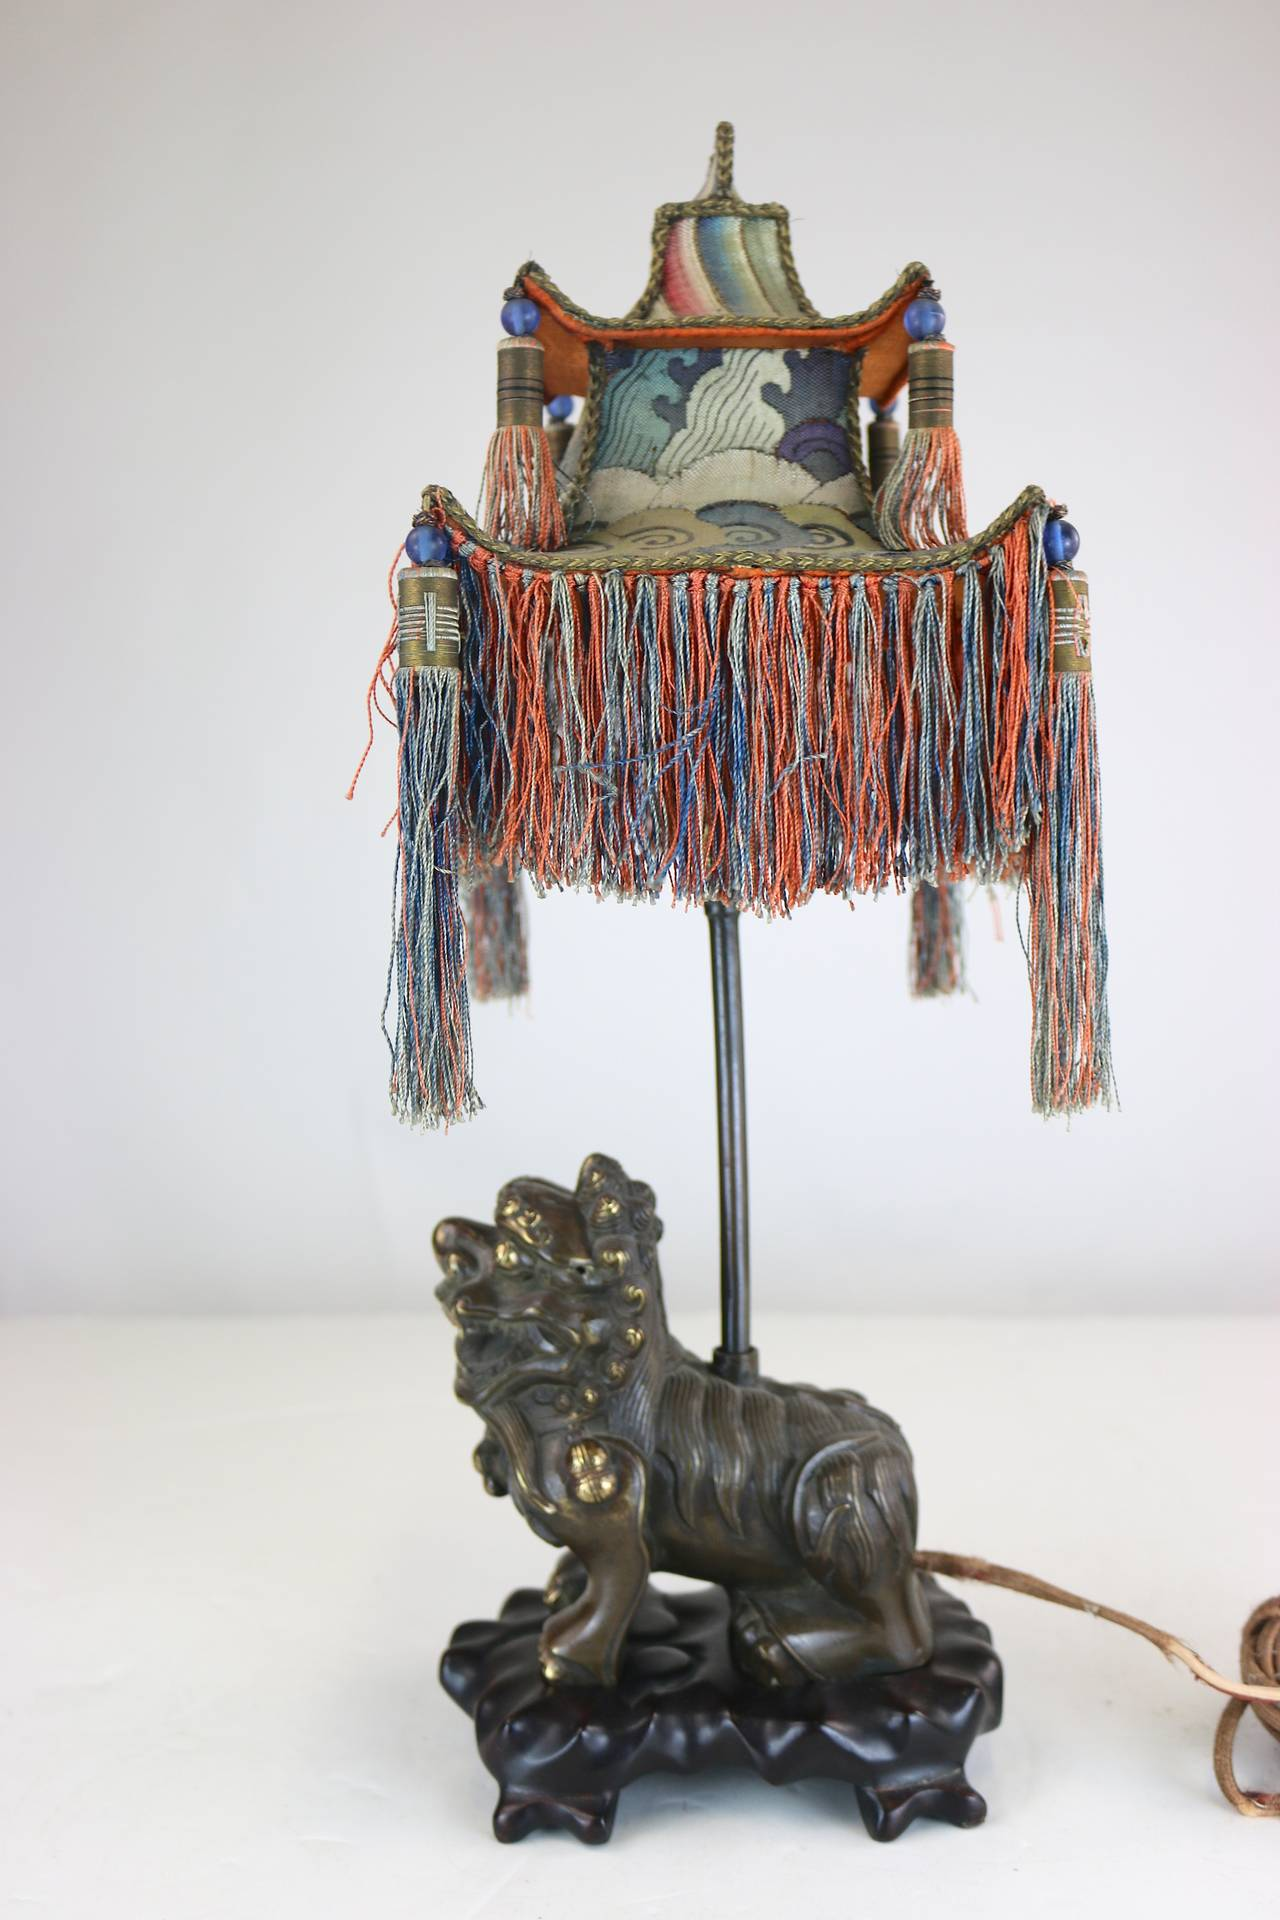 20th Century Rare Exotic 1920s Chinoiserie Lamp of Tasseled Pagoda Shade with Foo Dog Base For Sale